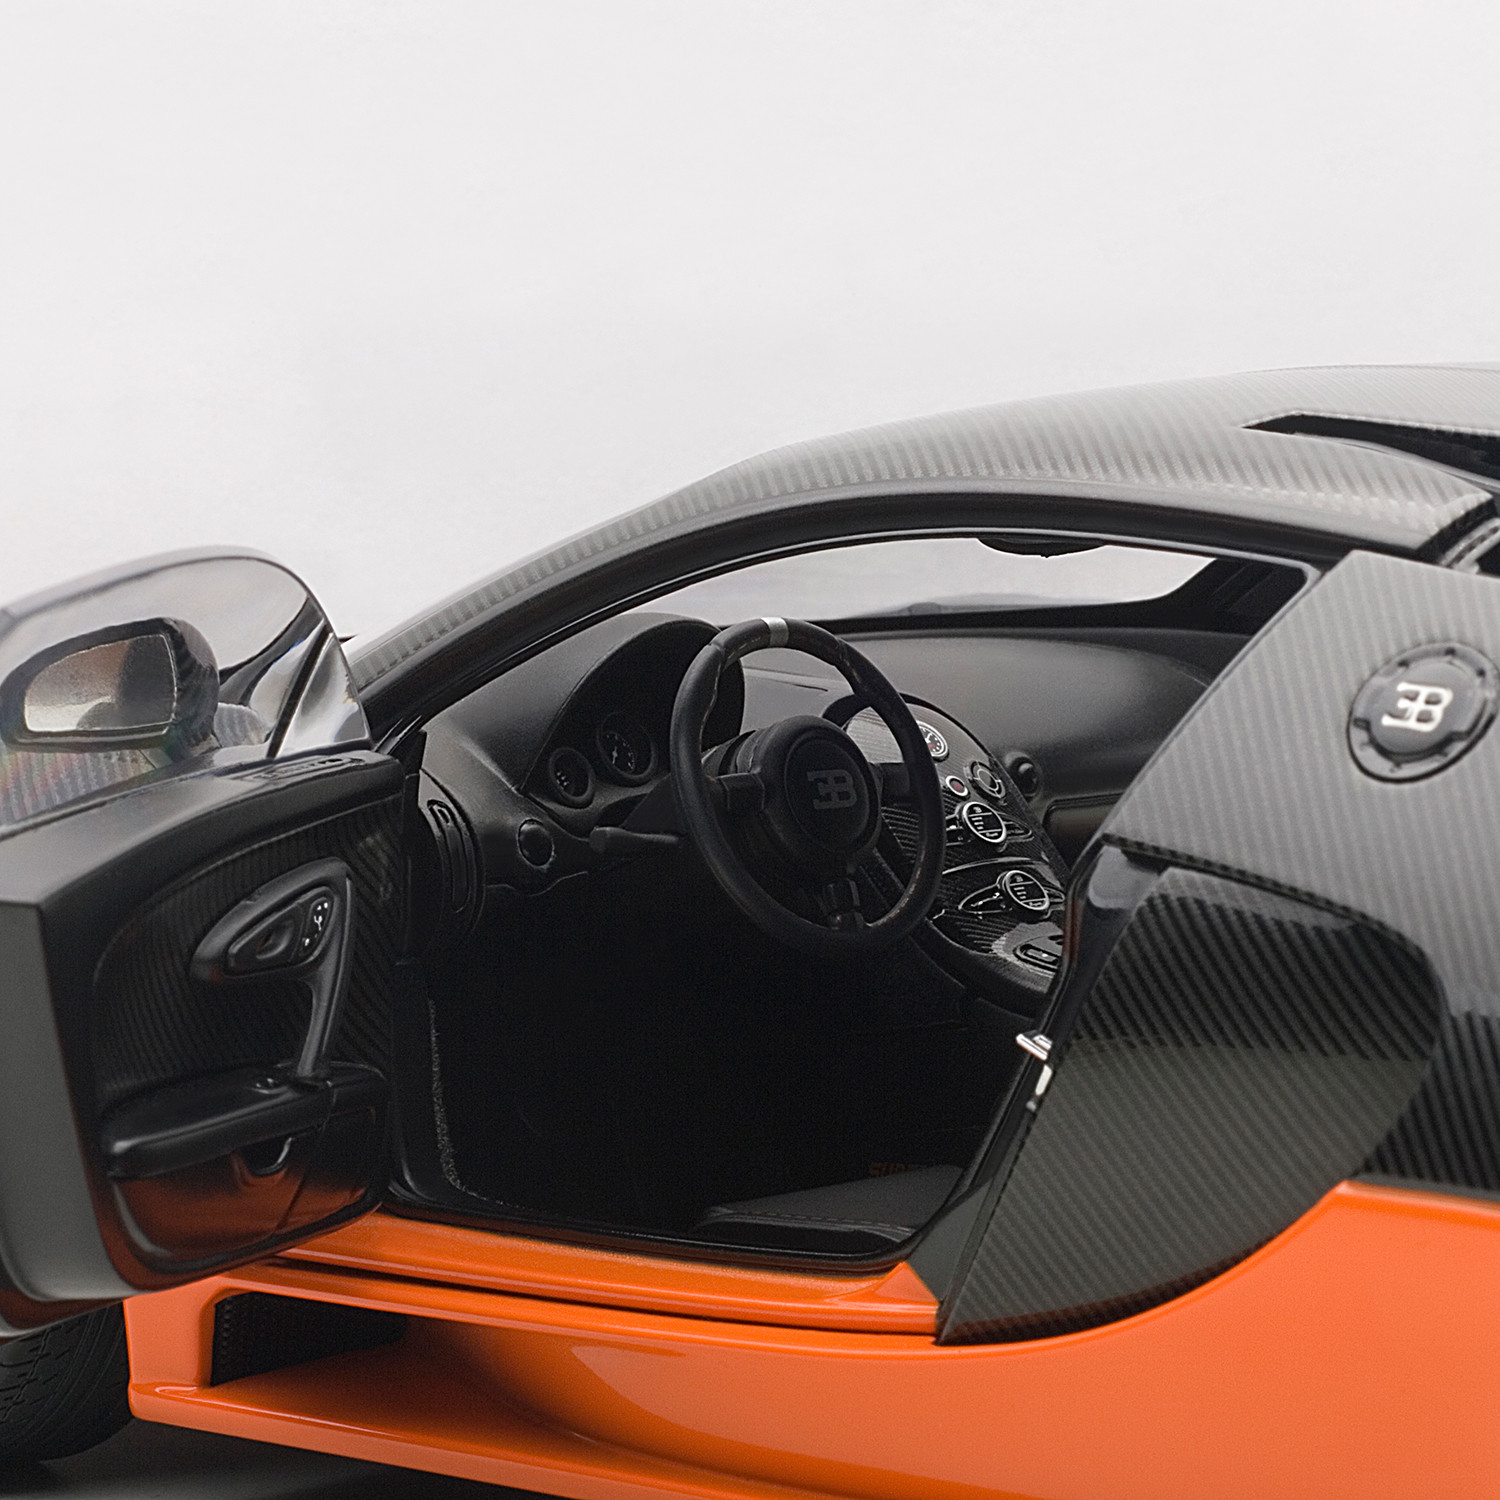 Bugatti Sport: Bugatti Veyron Super Sport (Black & Orange)